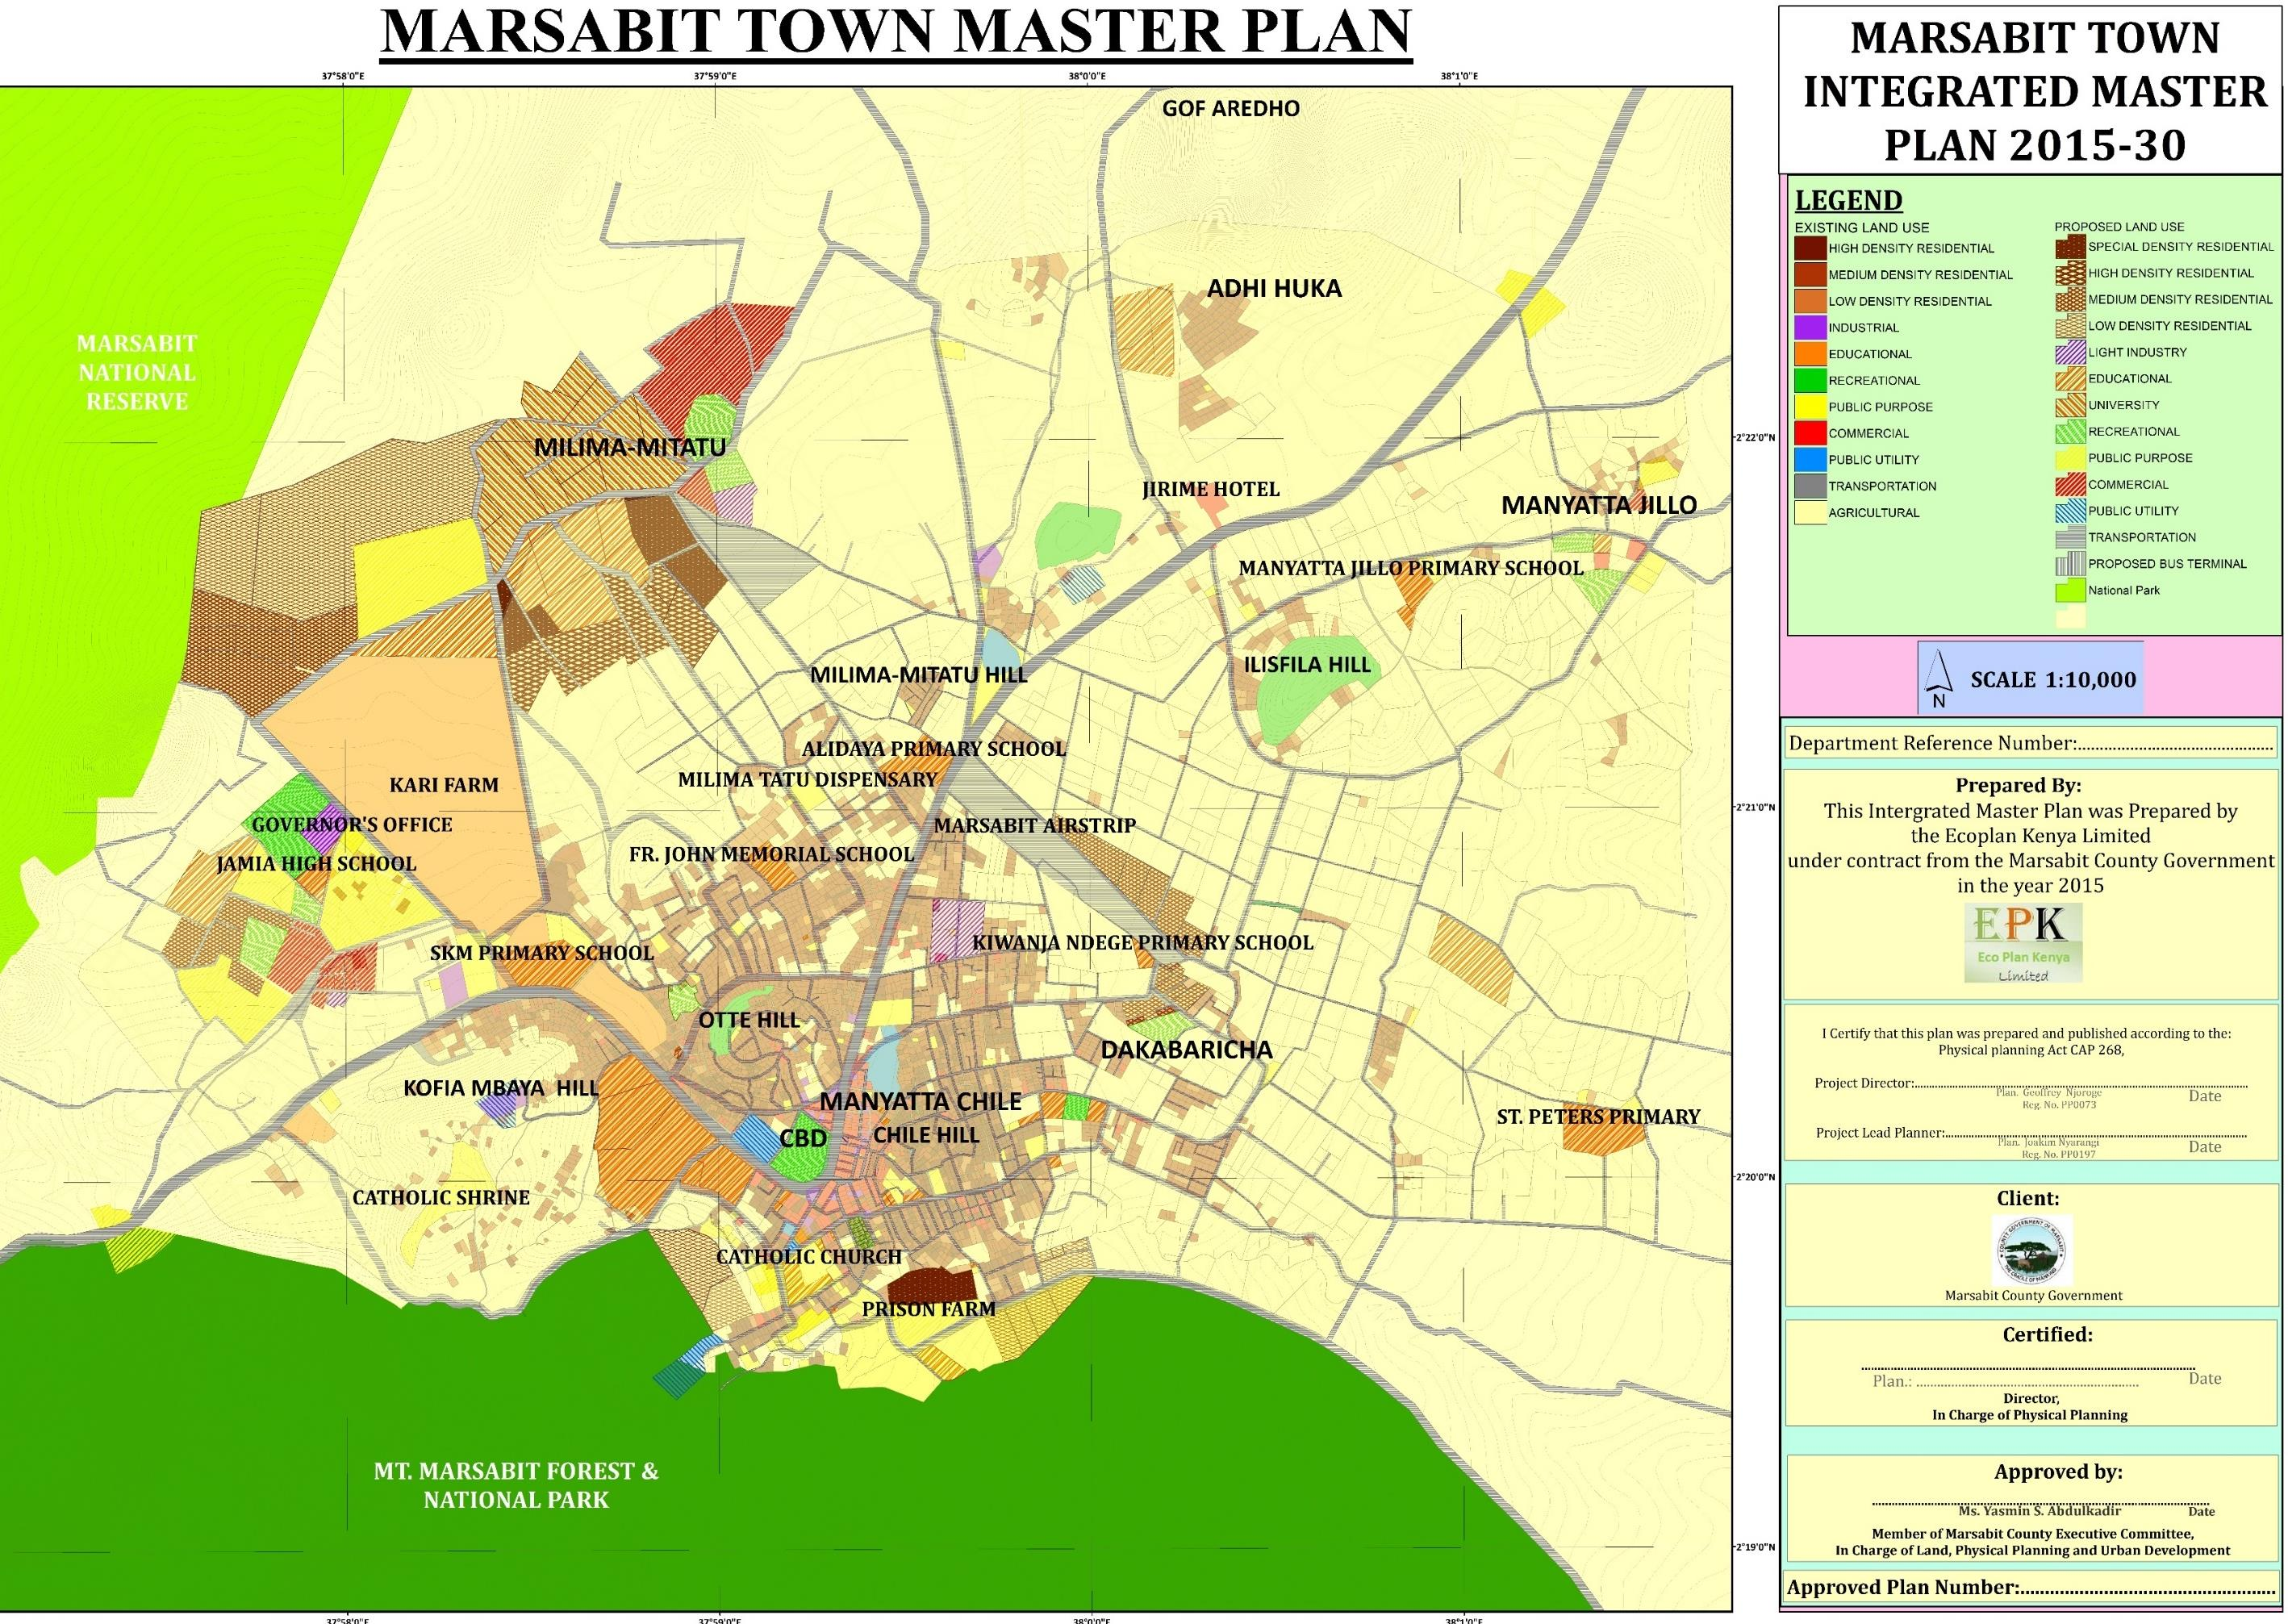 The-Integrated-Master-Plan-for-Marsabit-Town-2015-1